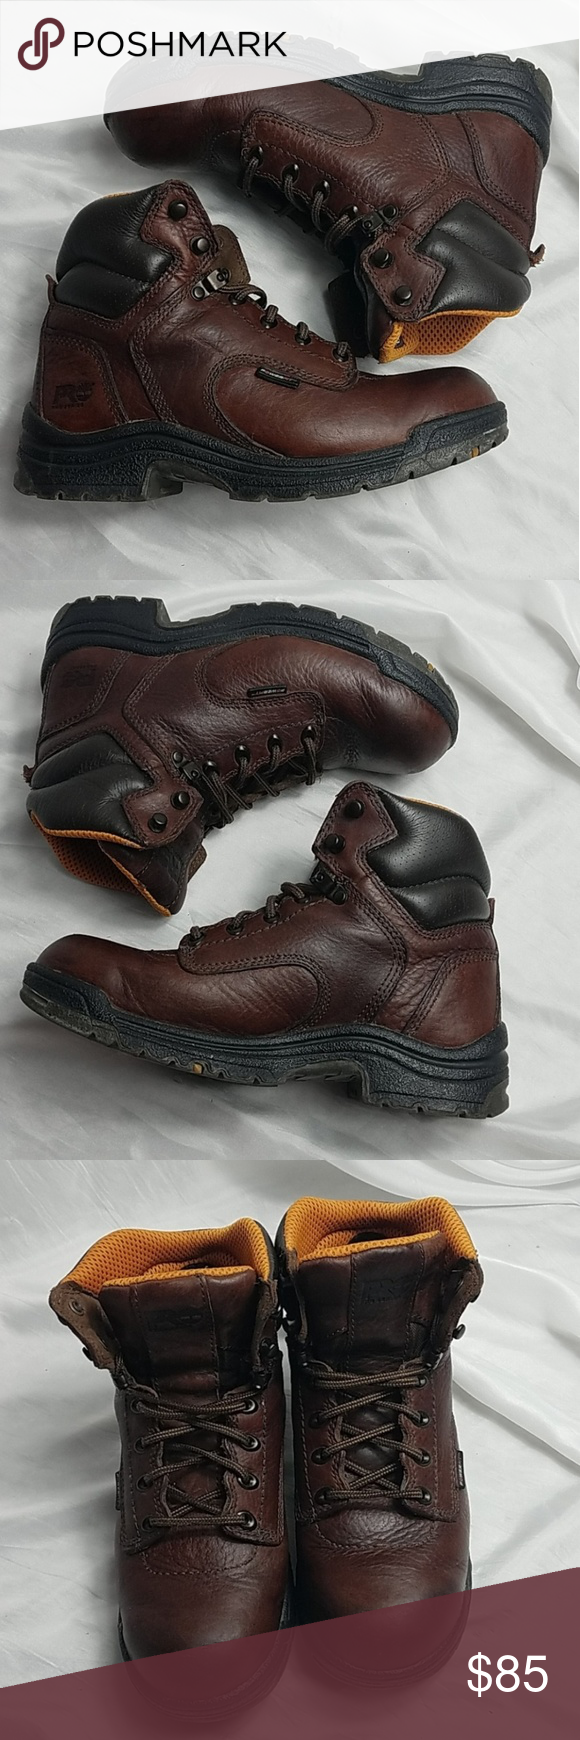 Timberland Womens Pro Series Leather Work Boots 8W